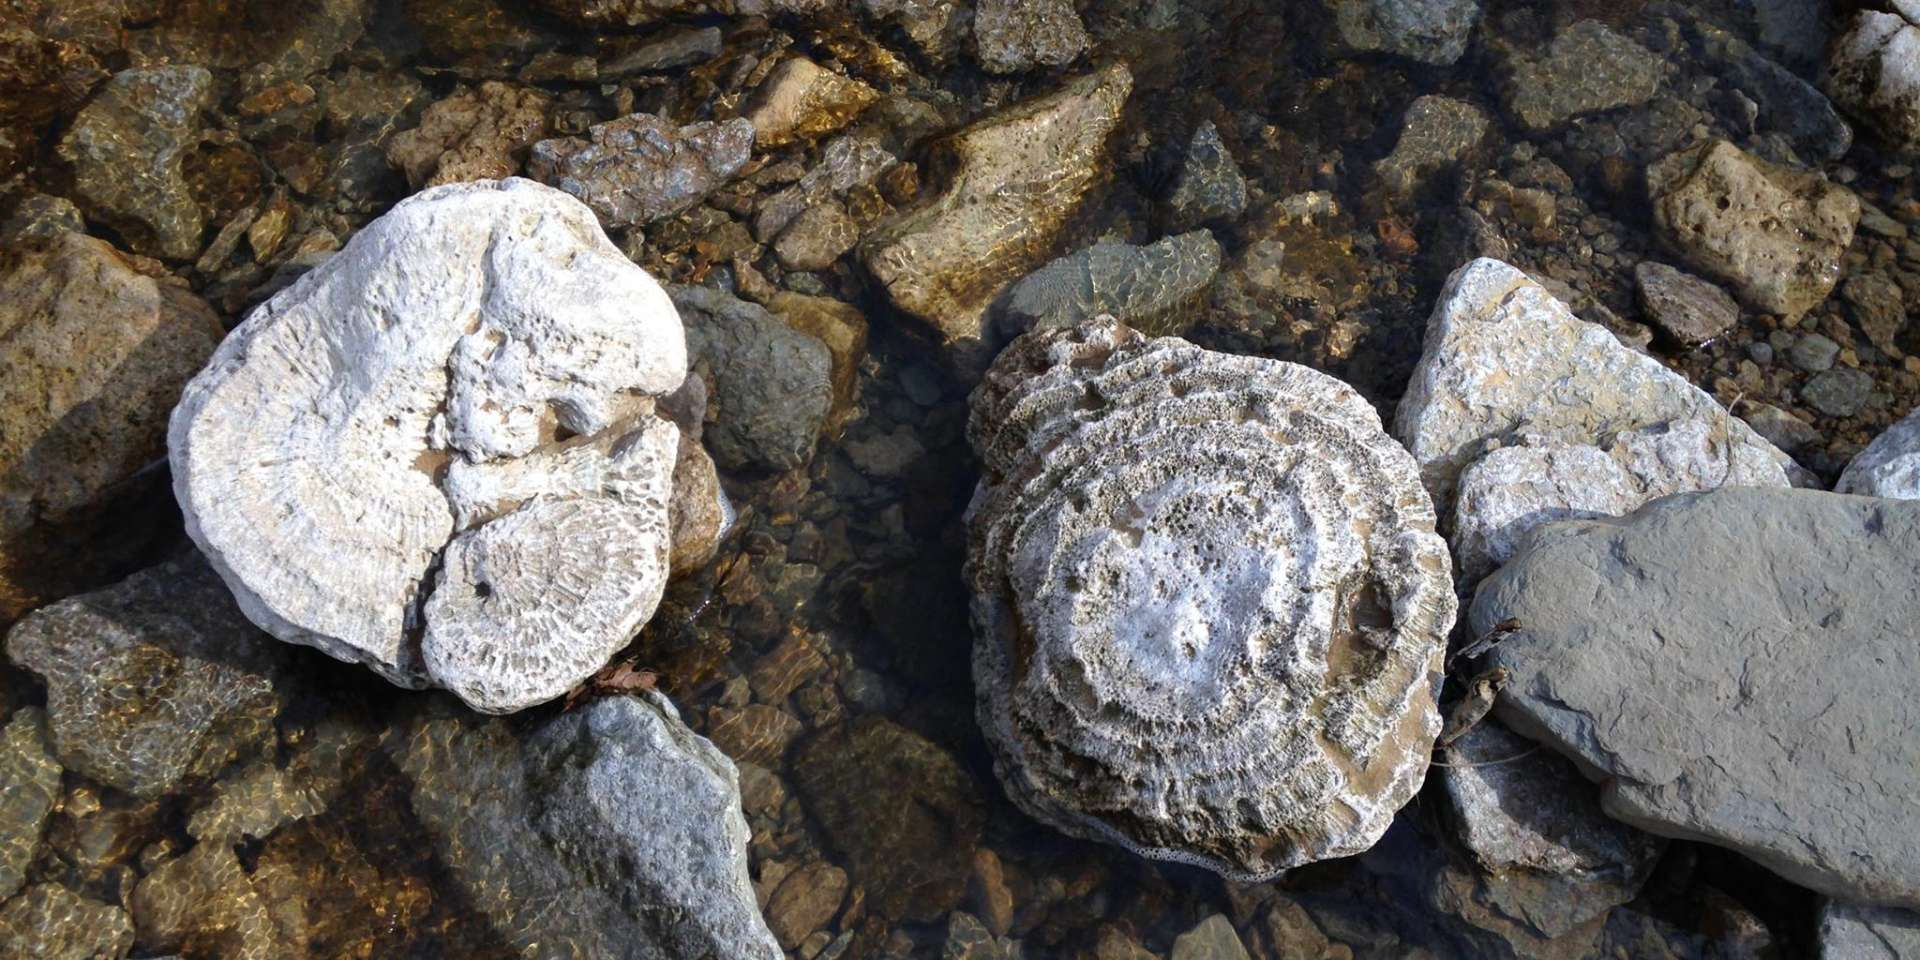 Fossils and rocks in shallow water at Clifty Falls State Park